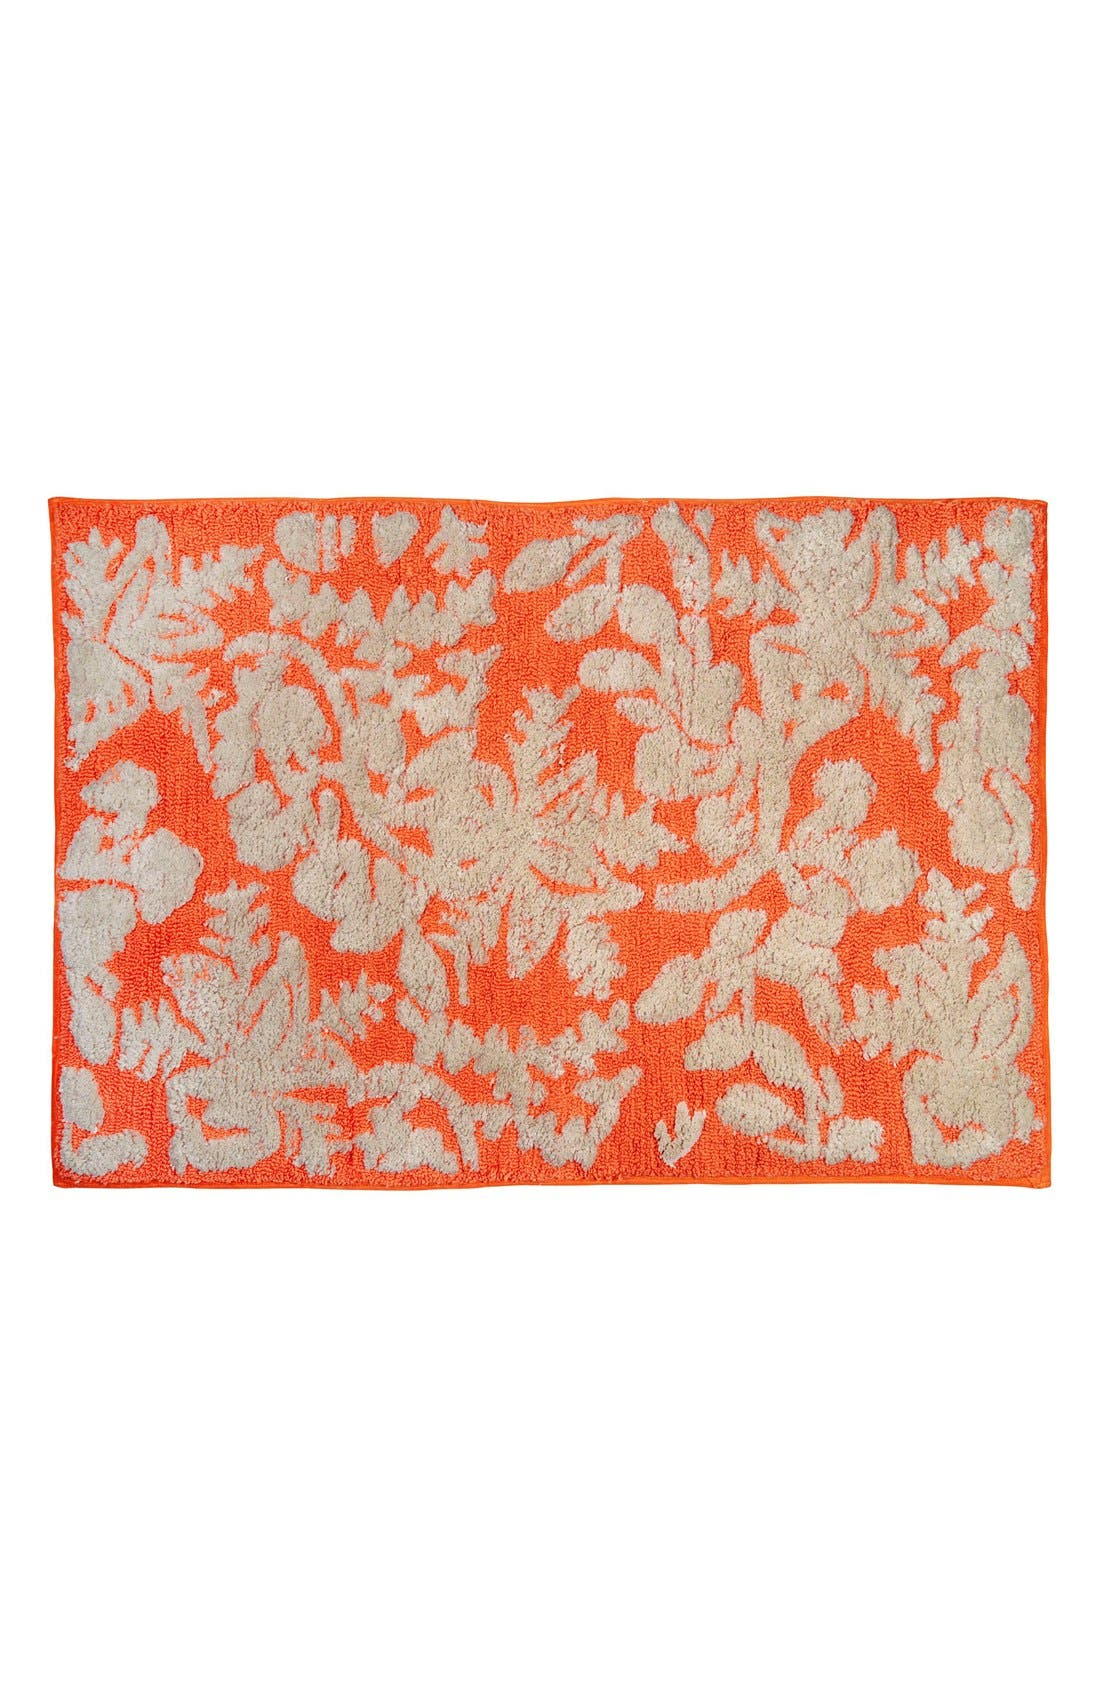 Alternate Image 1 Selected - John Robshaw 'Pasak' Bath Rug